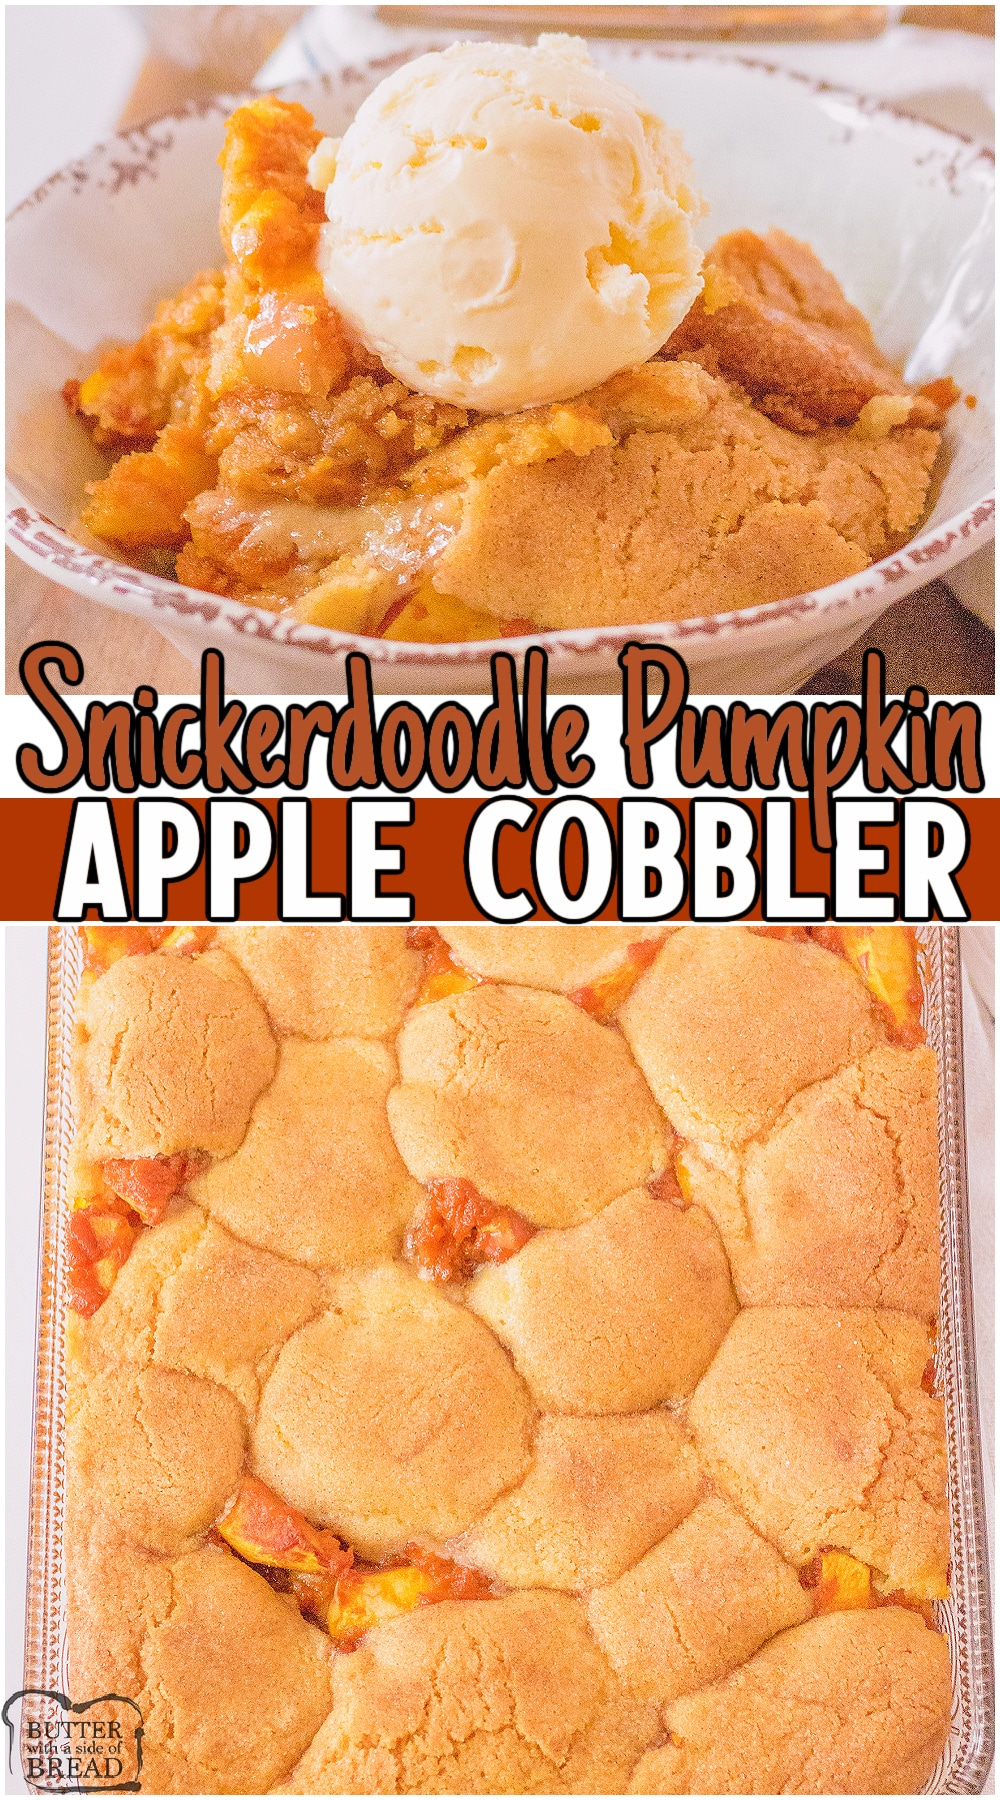 Snickerdoodle Pumpkin Apple Cobbler is a lovely blend of the BEST Fall flavors in one dessert! Sweet crisp apples covered with a pumpkin brown sugar mix & baked between layers of cinnamon cookie dough! This Fall cobbler is incredible topped with vanilla ice cream! #cobbler #apple #pumpkin #snickerdoodle #baking #dessert #easyrecipe from BUTTER WITH A SIDE OF BREAD